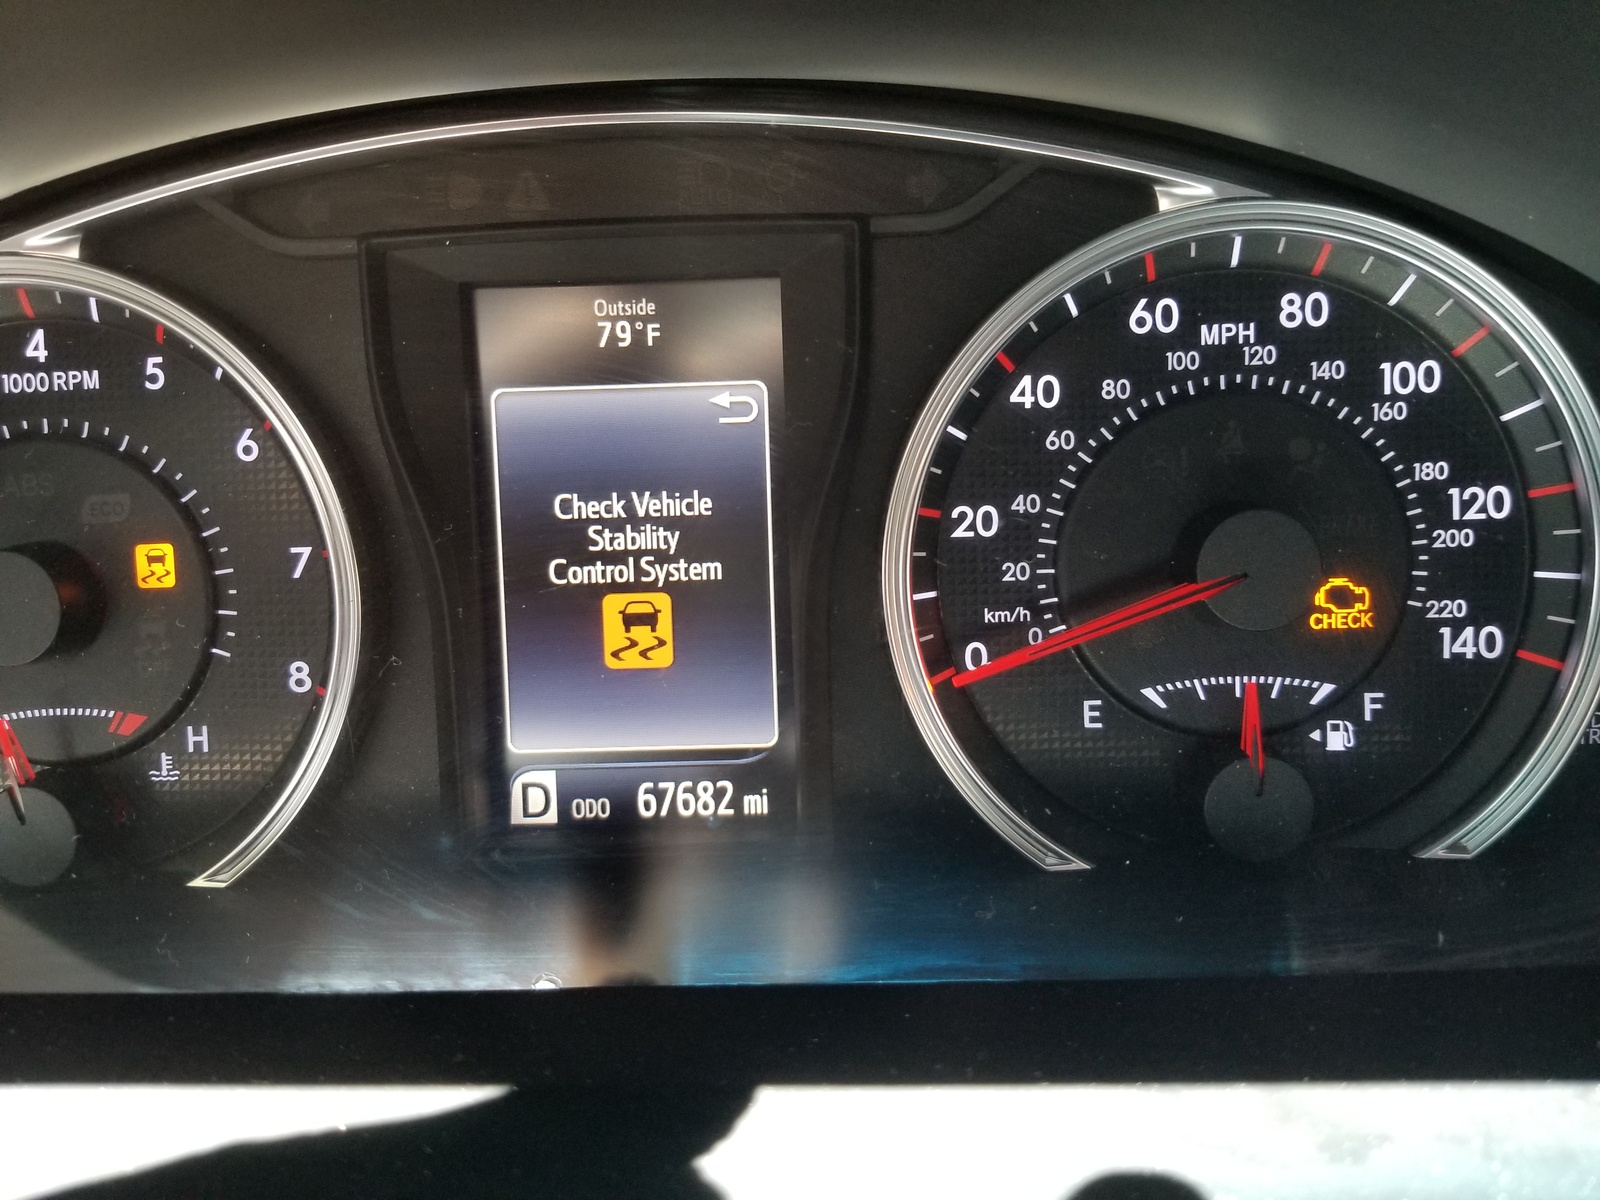 VSC off, TRAC off, and Check Engine light all came on the same time. I know  I need new shock absorbers, but why would the Check Engine light come on?